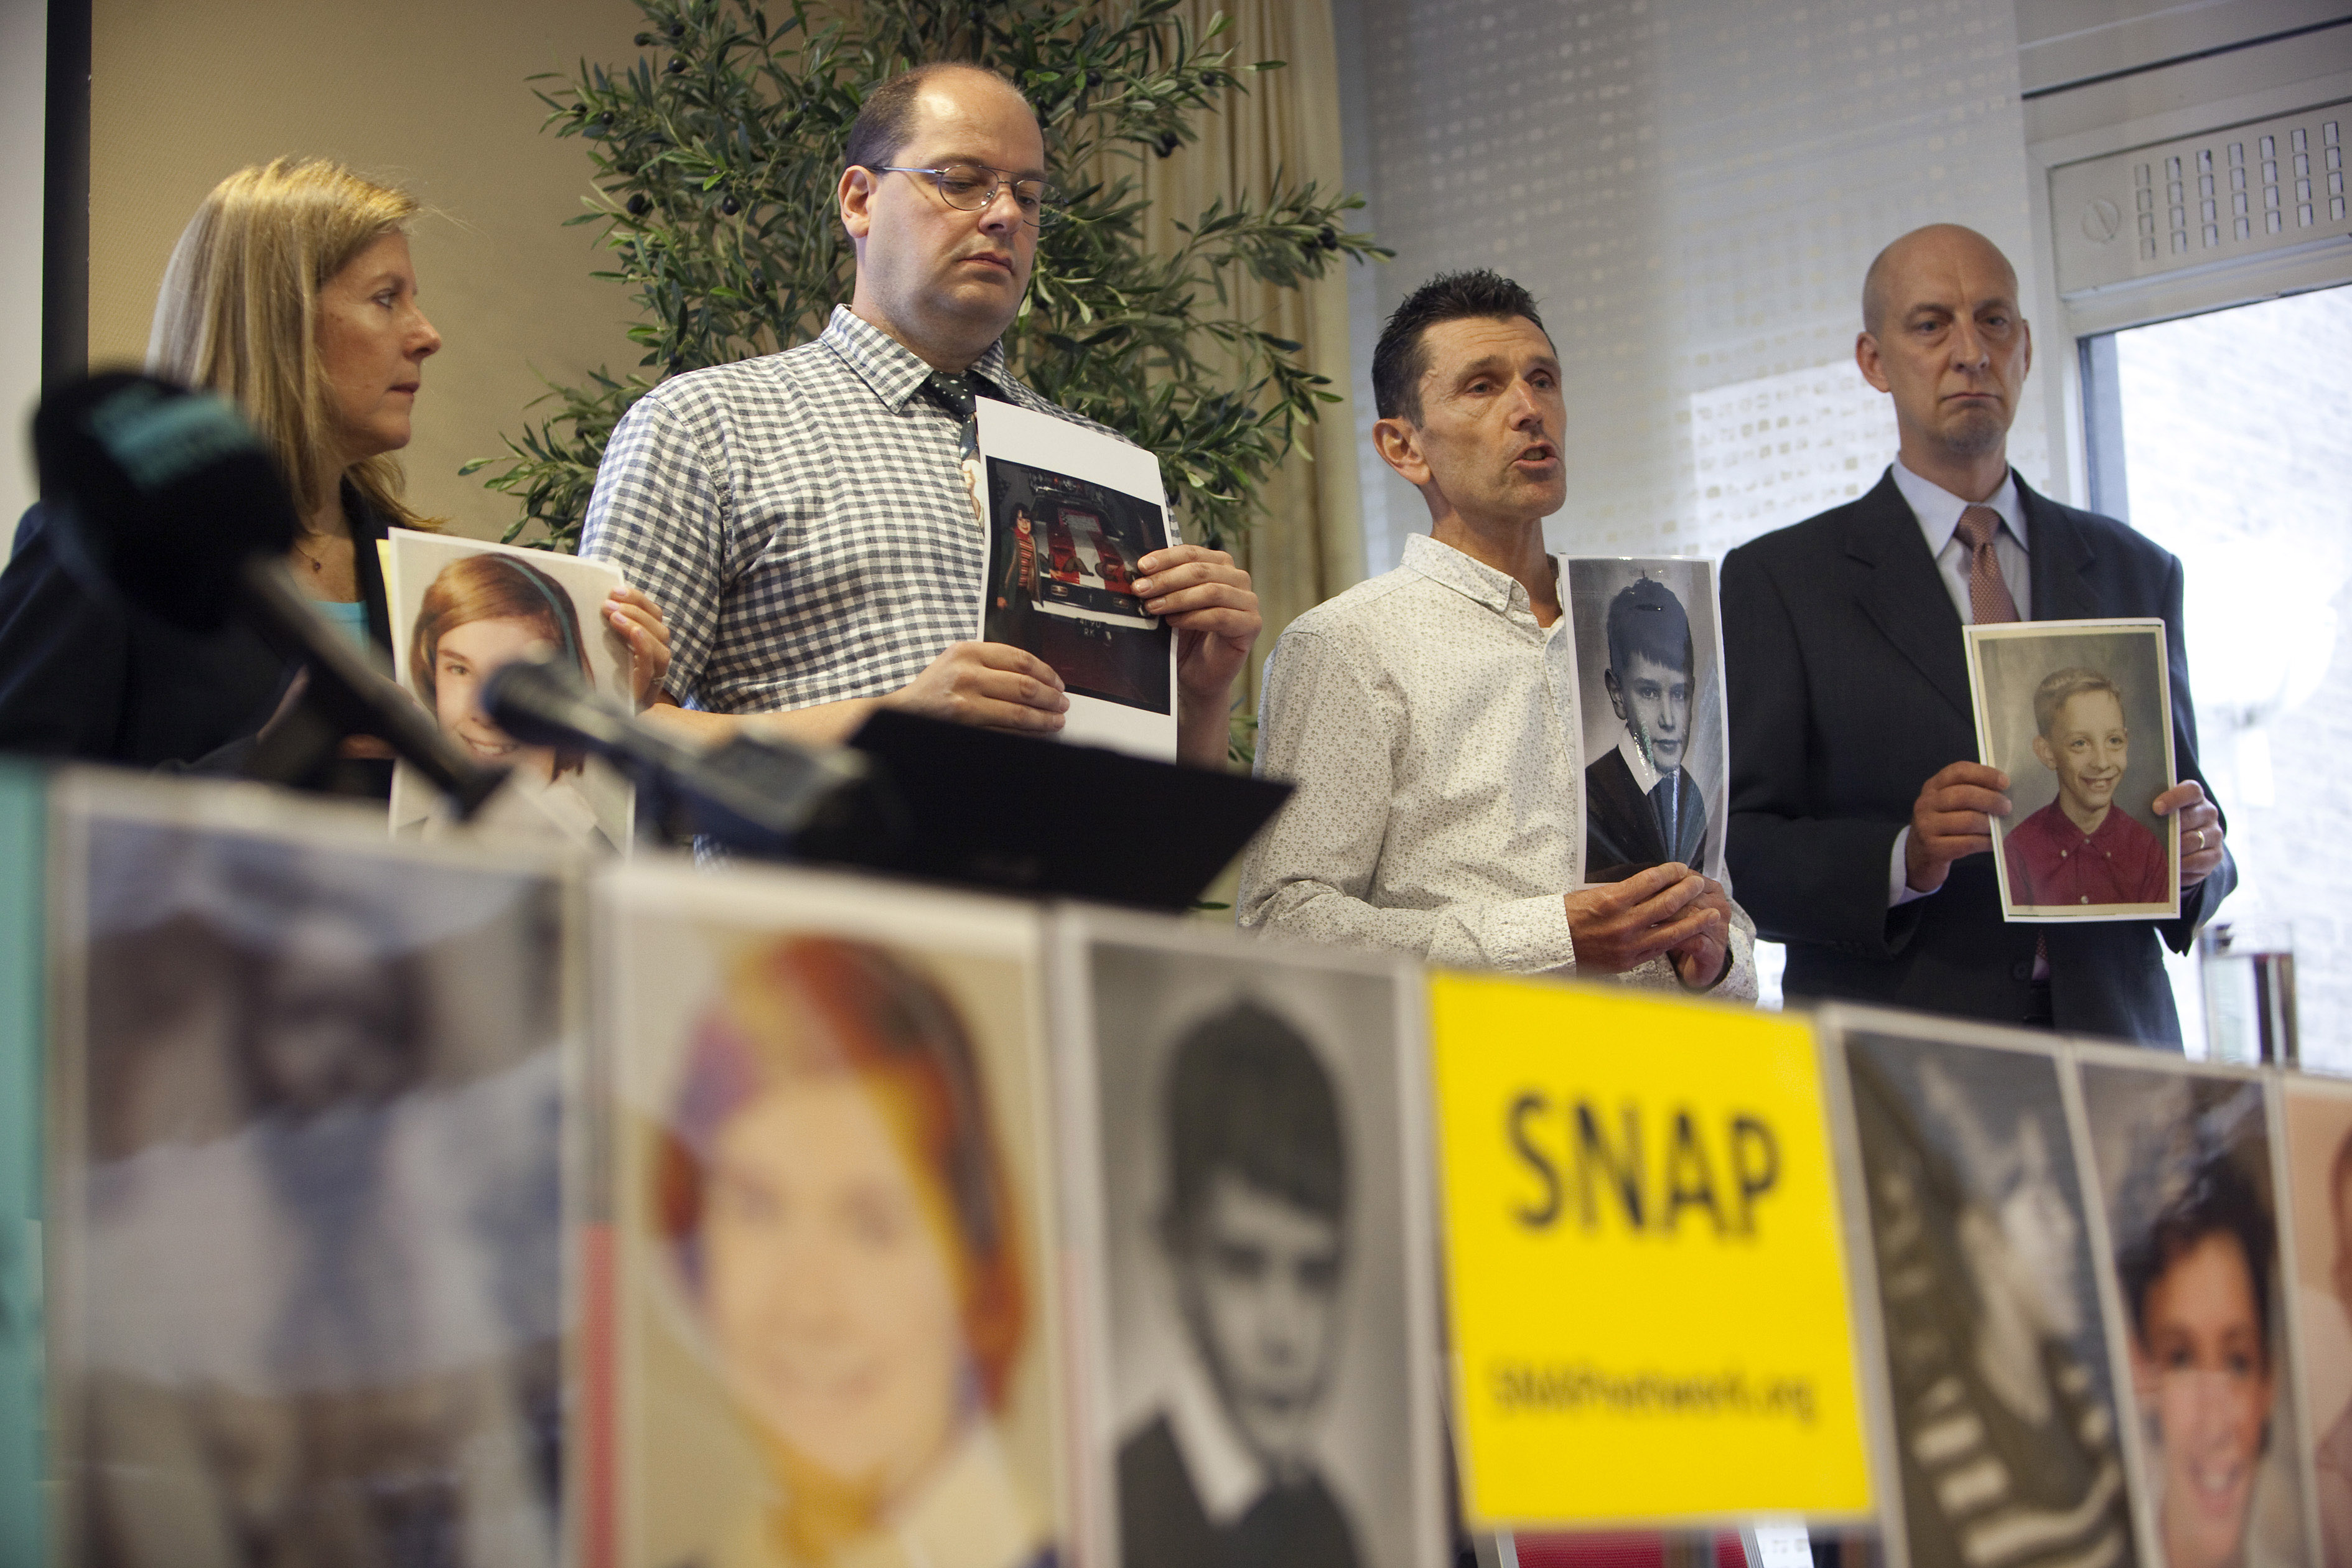 Members of Survivors Network of those Abused by Priests (SNAP)attend a press conference in Voorburg, near The Hague, Netherlands, Tuesday, Sept. 13, 2011.